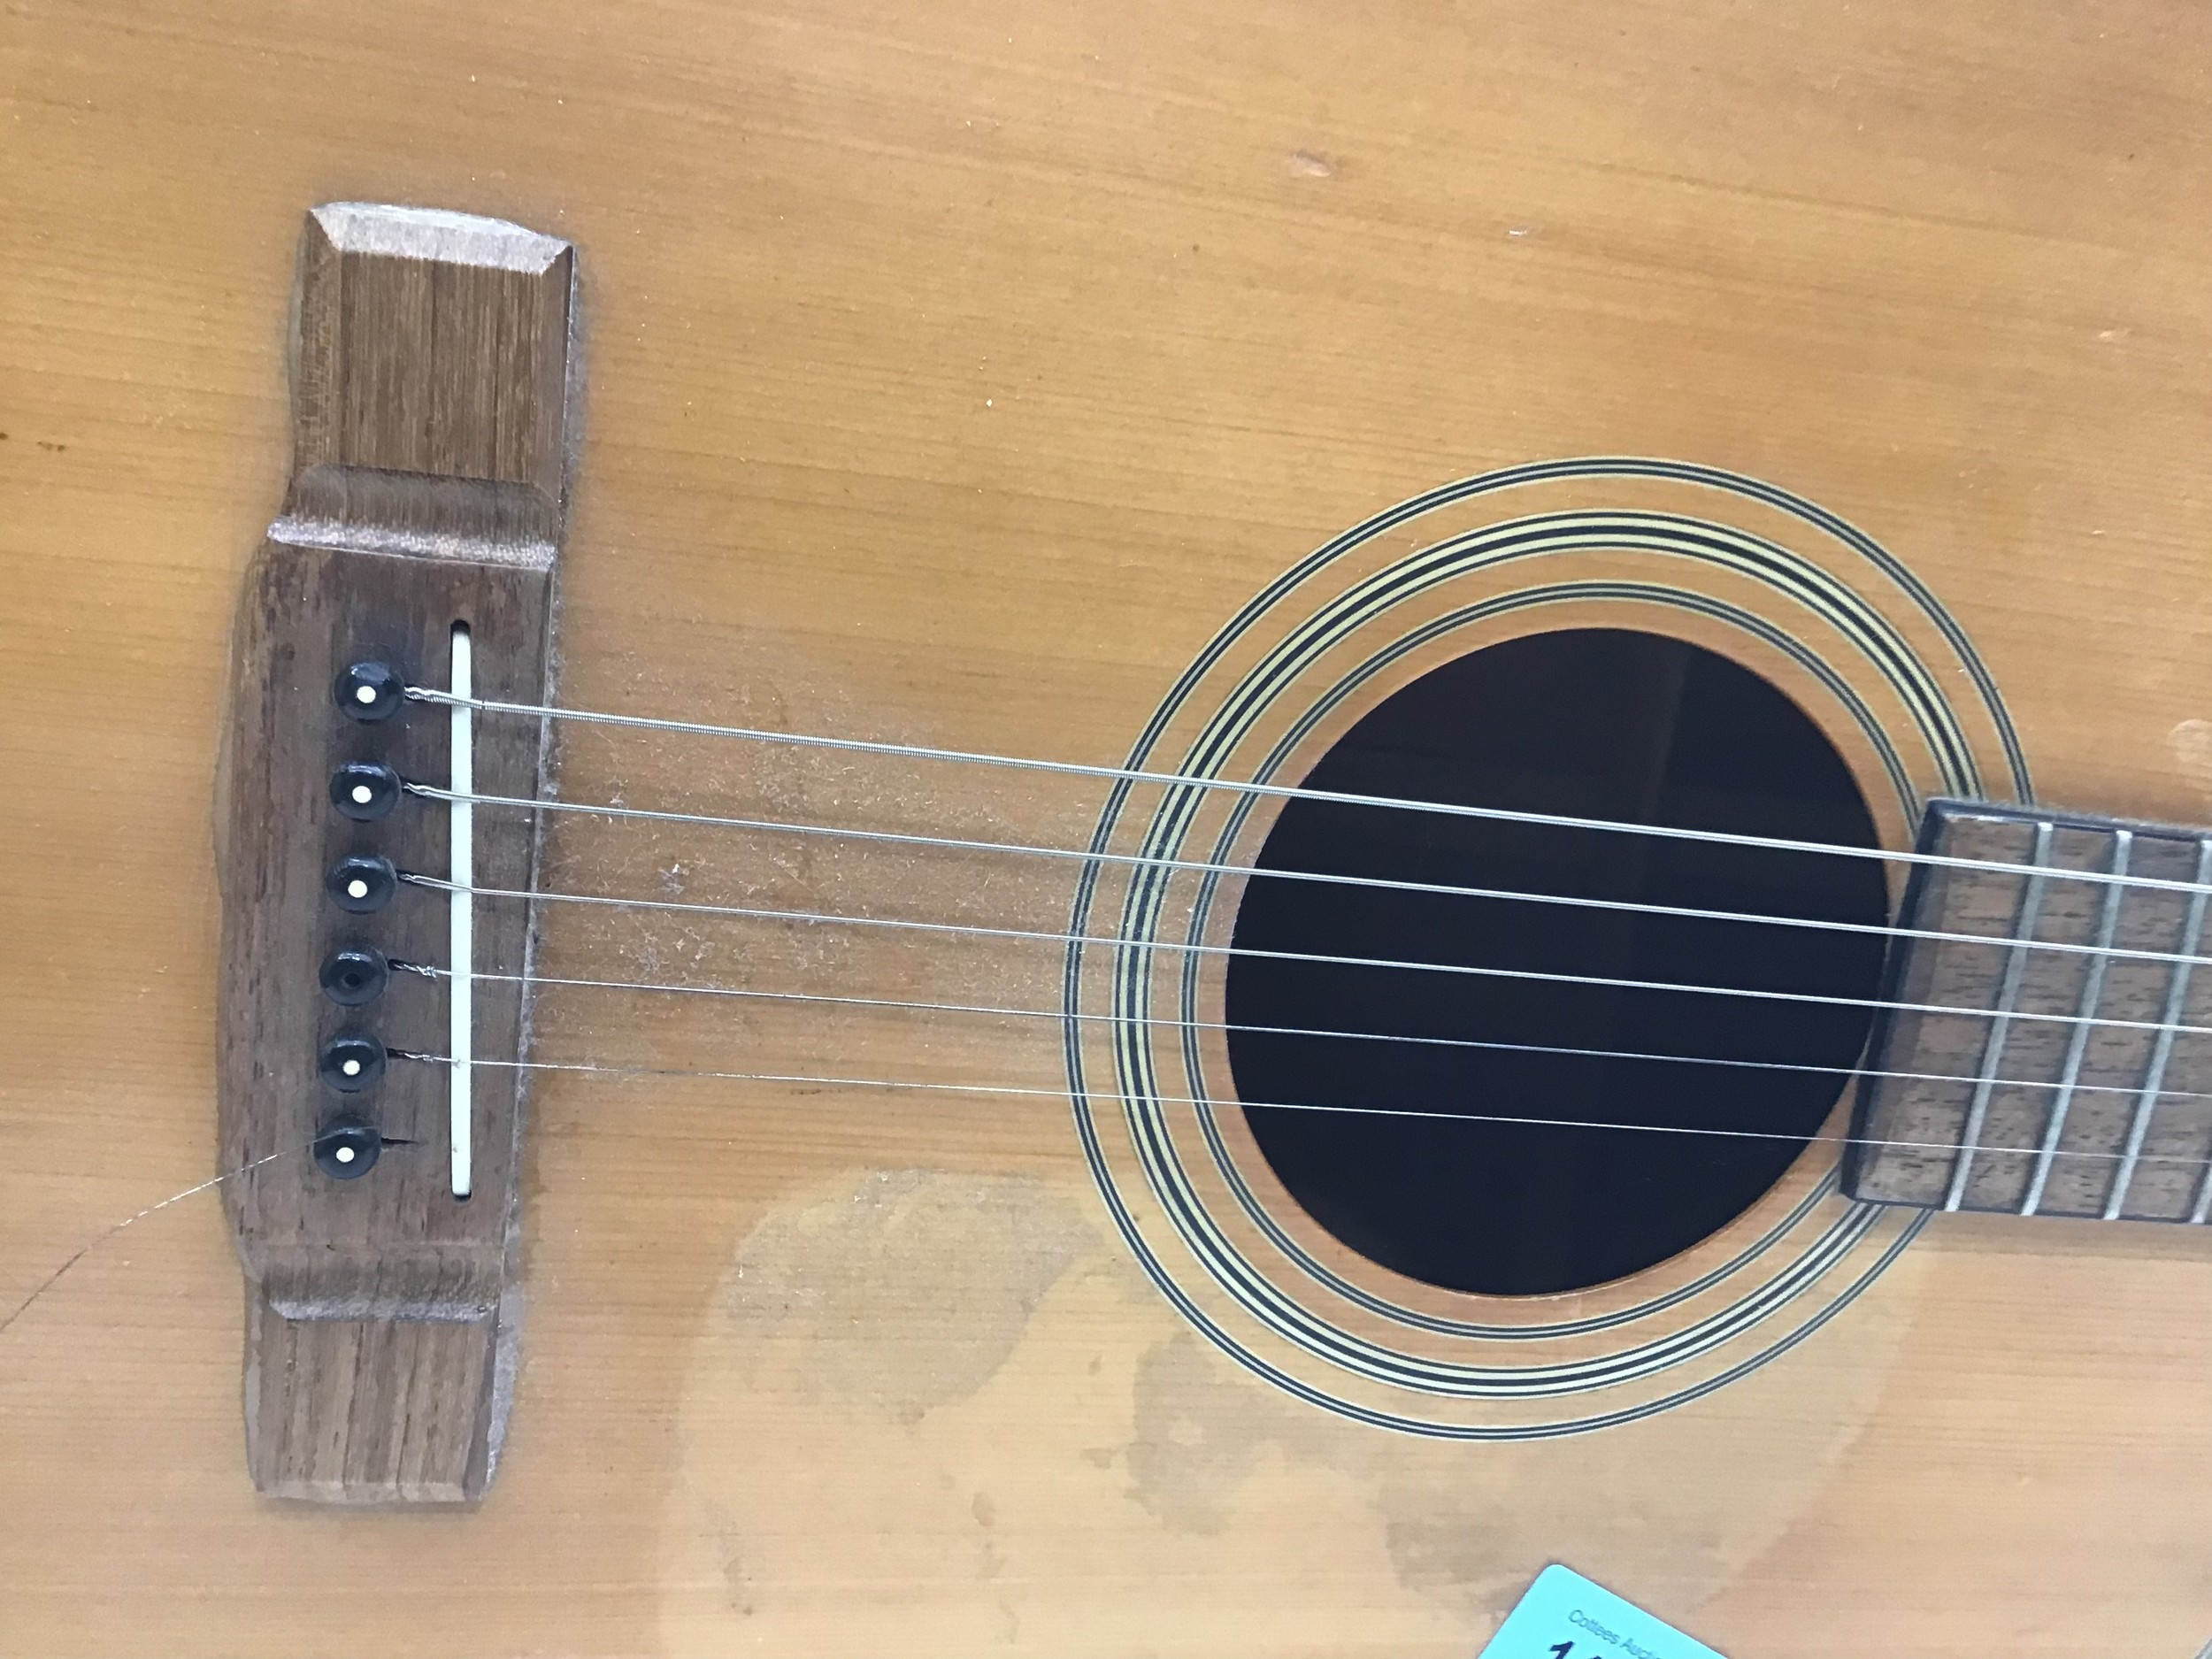 WASHBURN ACOUSTIC GUITAR. This 6 stringed guitar is finished in rosewood and comes with a strap. - Image 3 of 6